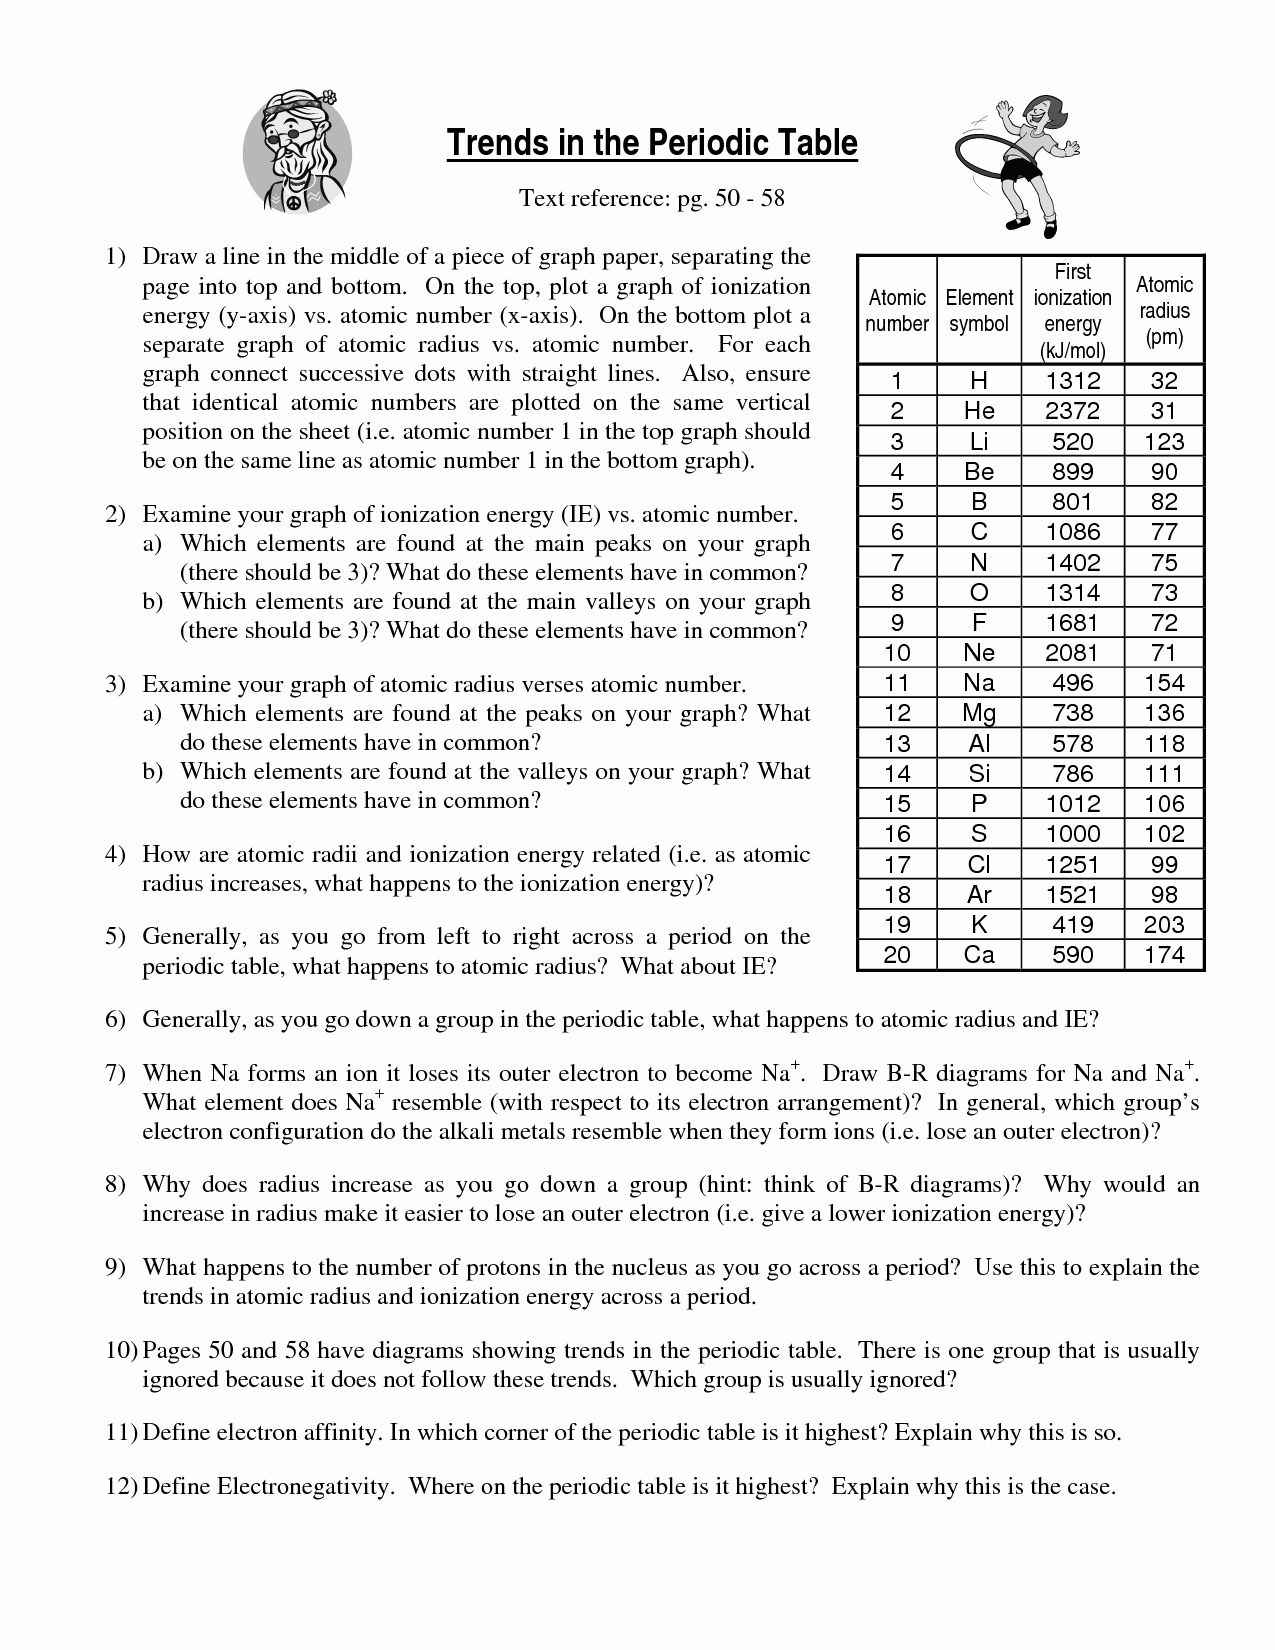 Worksheet Periodic Table Trends Fresh Pin On Chemistry